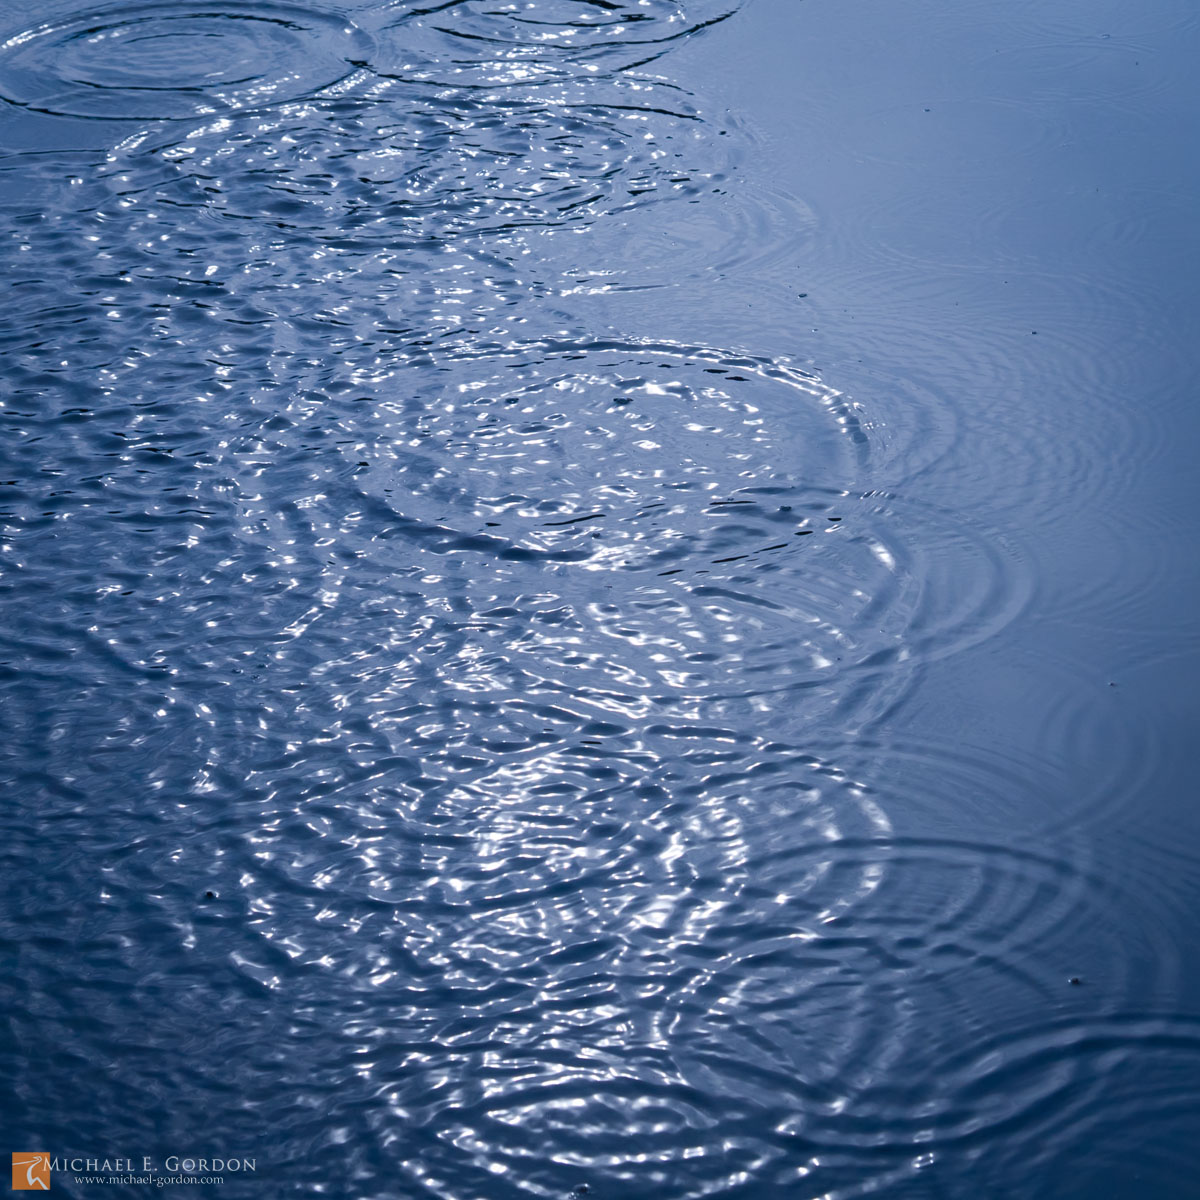 color,photo,picture,Adirondack Mountains,New York,lake,current,reflection,ripples,wind,breeze,motion,study,blue,blur,soft,peaceful,calm,tranquil,water droplets, photo